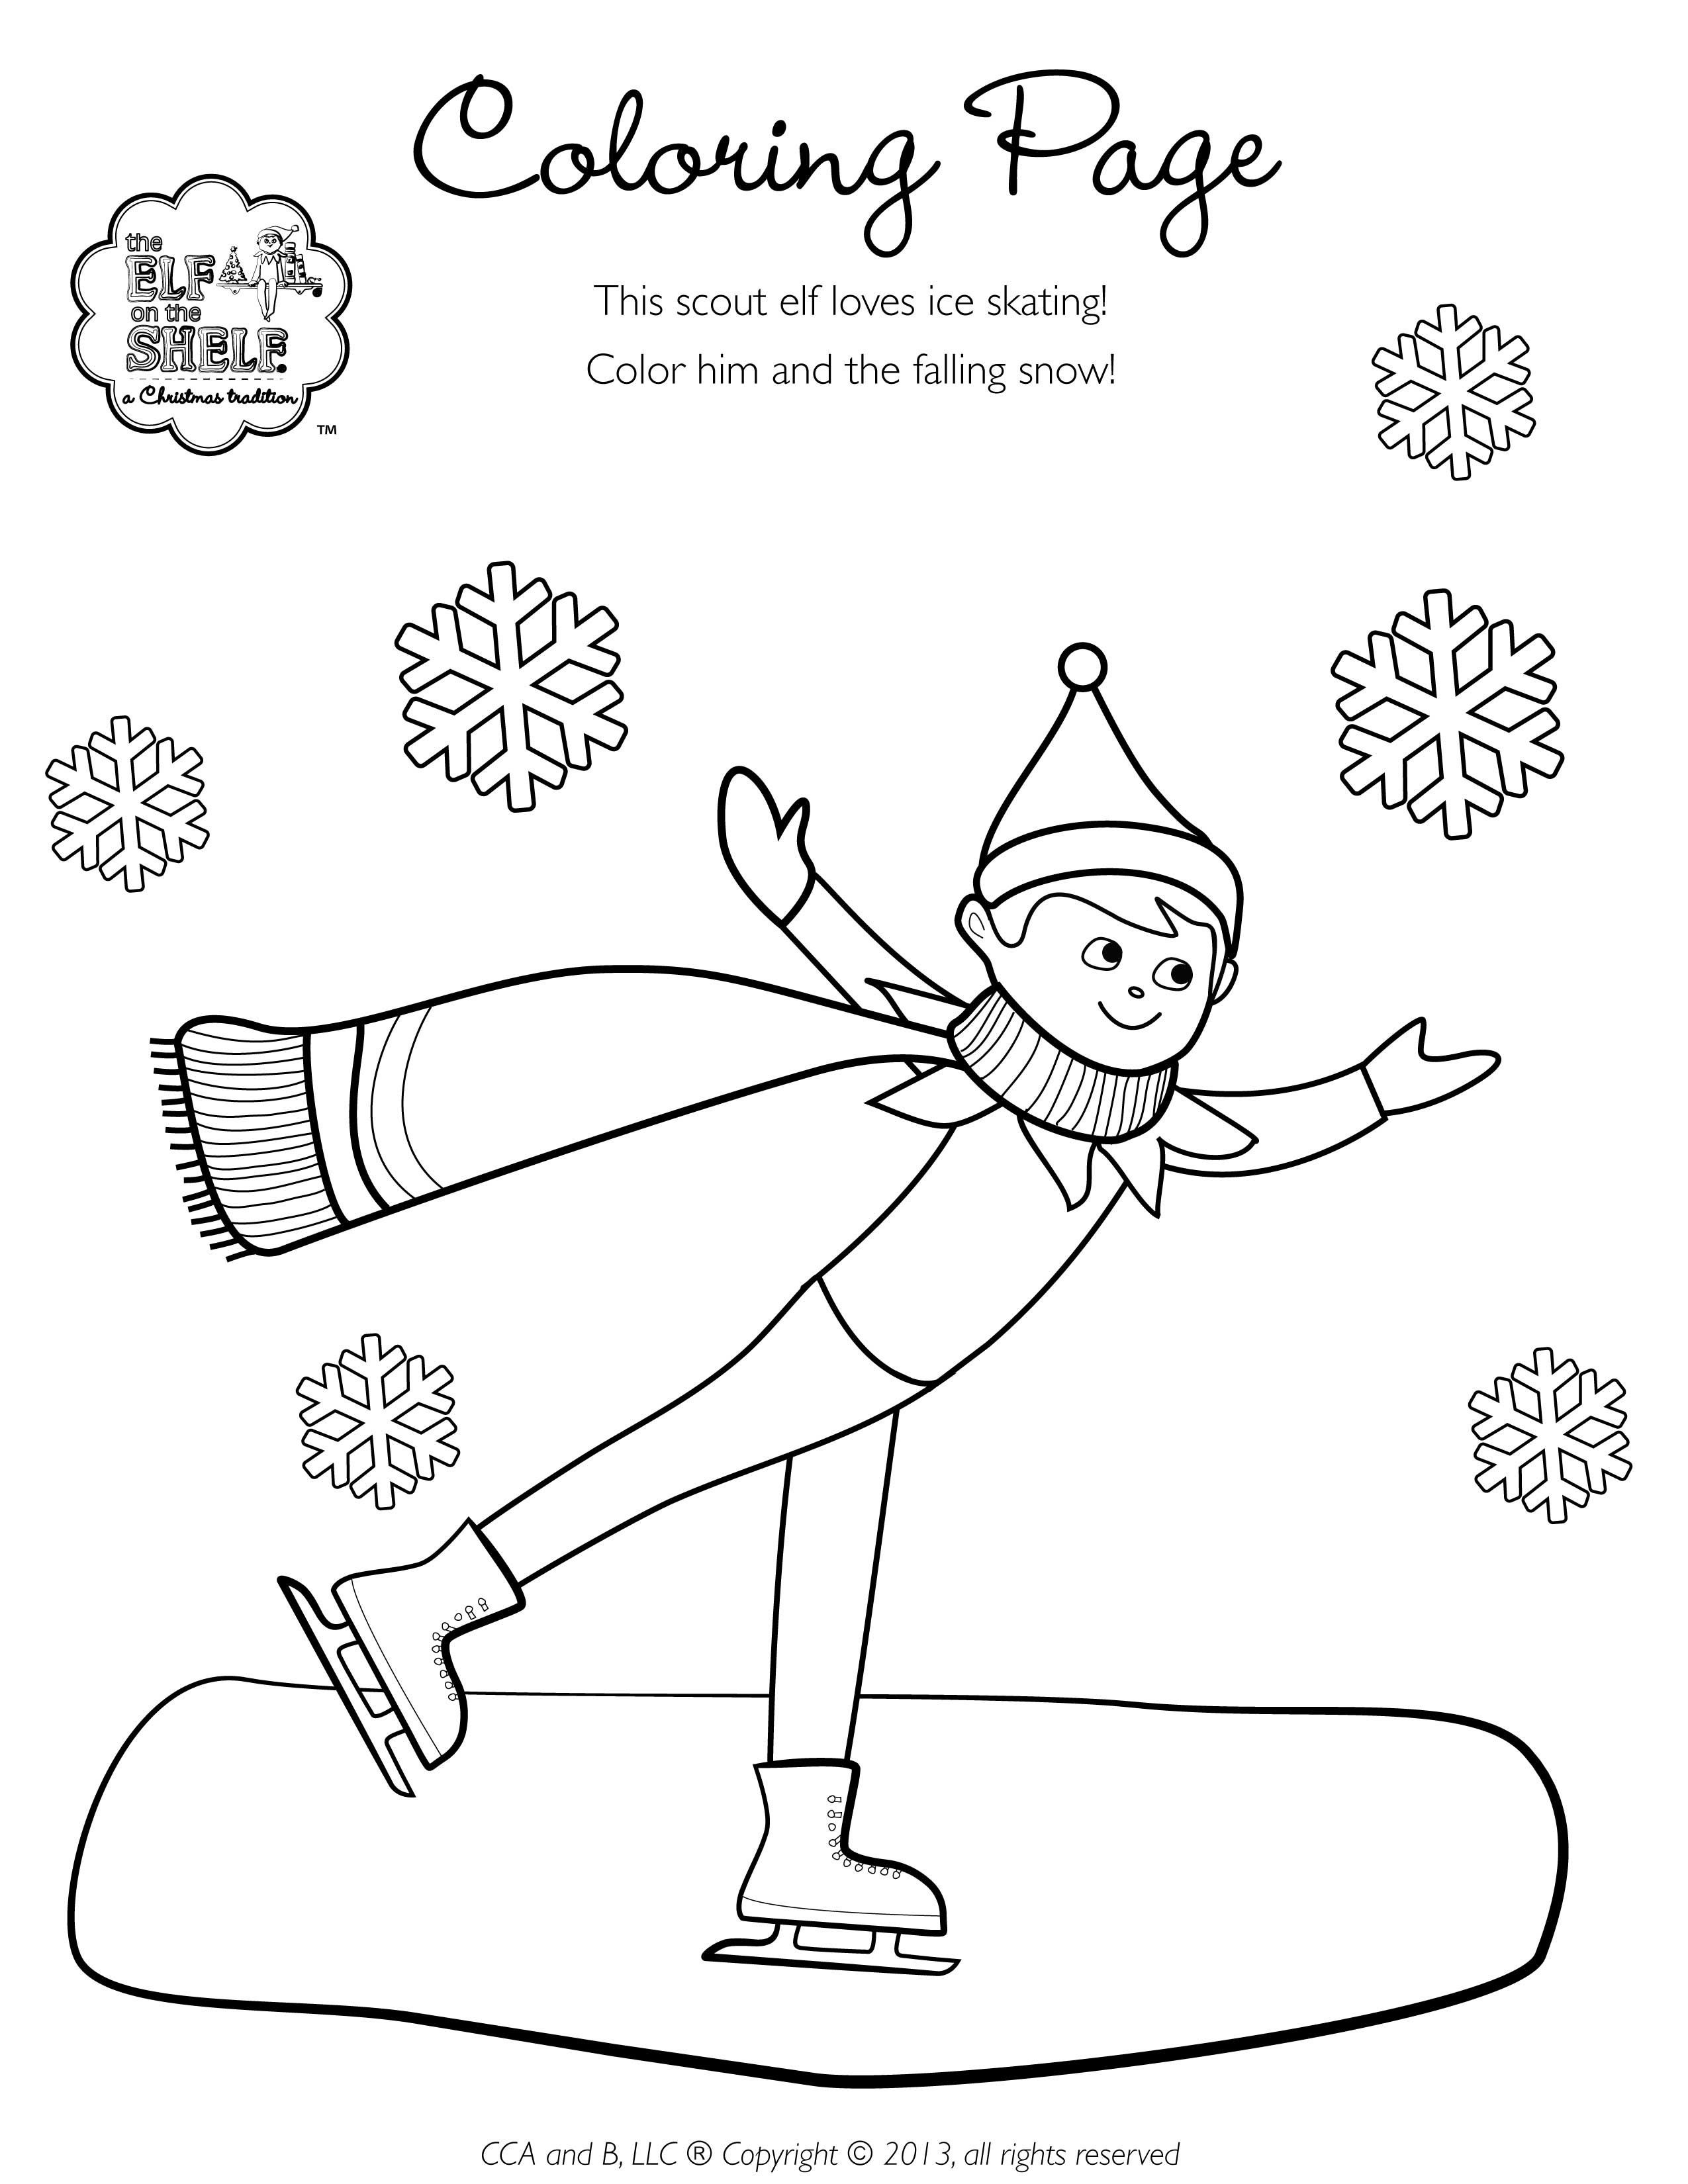 The North Pole Has Been Hit With A Blizzard To Stay Warm And Avoid The Blustery Winds And Snow The Scout Elves Have Been Busy Eati Coloring Pages Elf The Elf